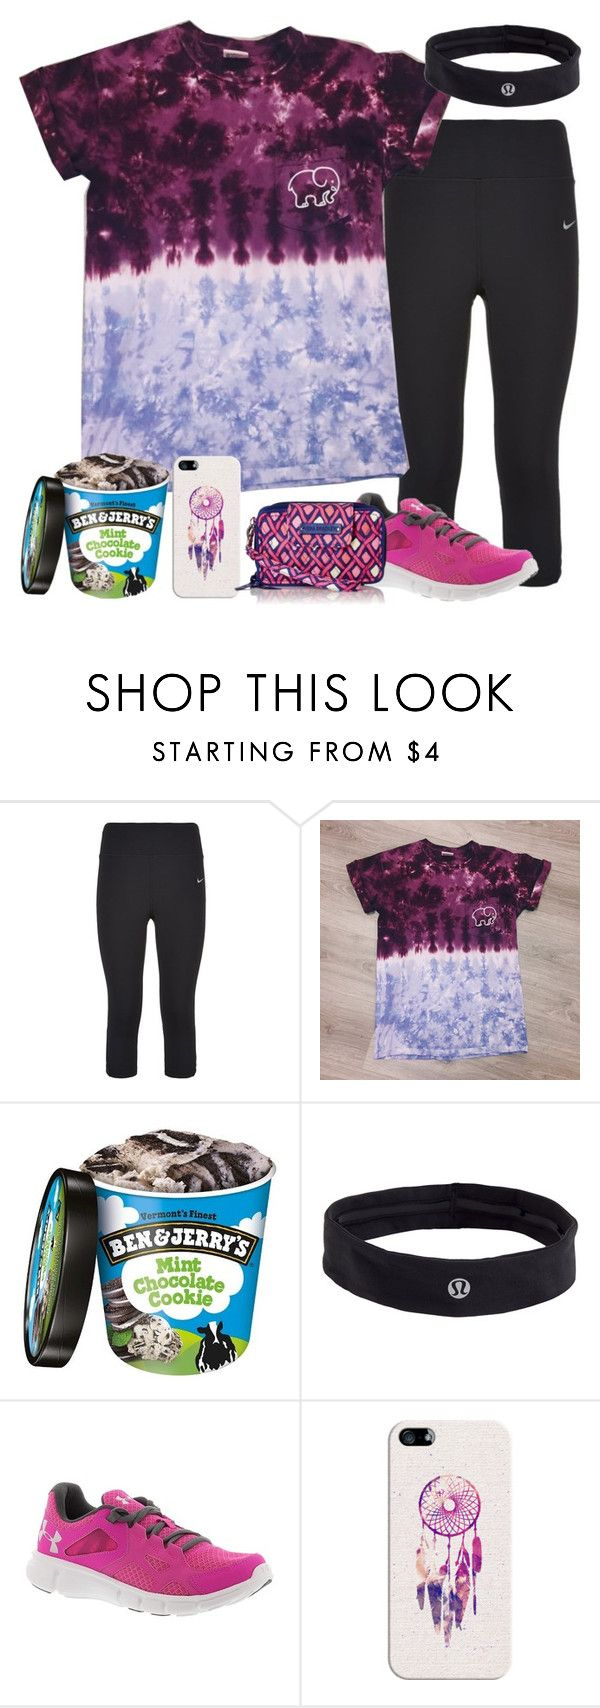 """""""Why do teachers make us write essays?"""" by mehanahan ❤ liked on Polyvore featuring NIKE, lululemon, Under Armour, Casetify and Vera Bradley"""